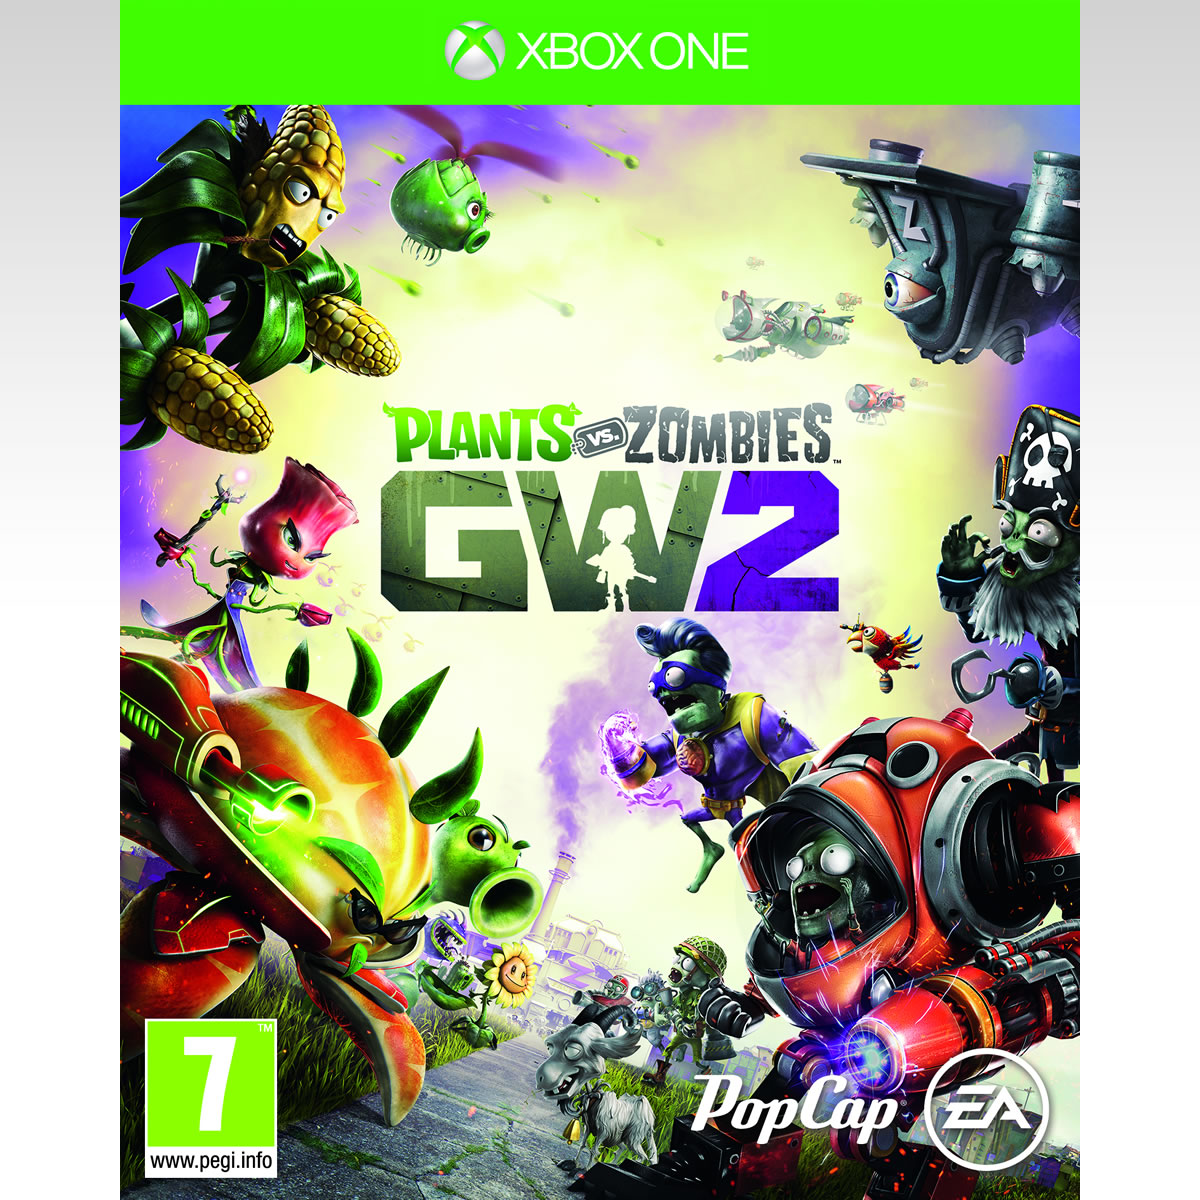 PLANTS VS ZOMBIES GARDEN WARFARE 2 (XBOX ONE)